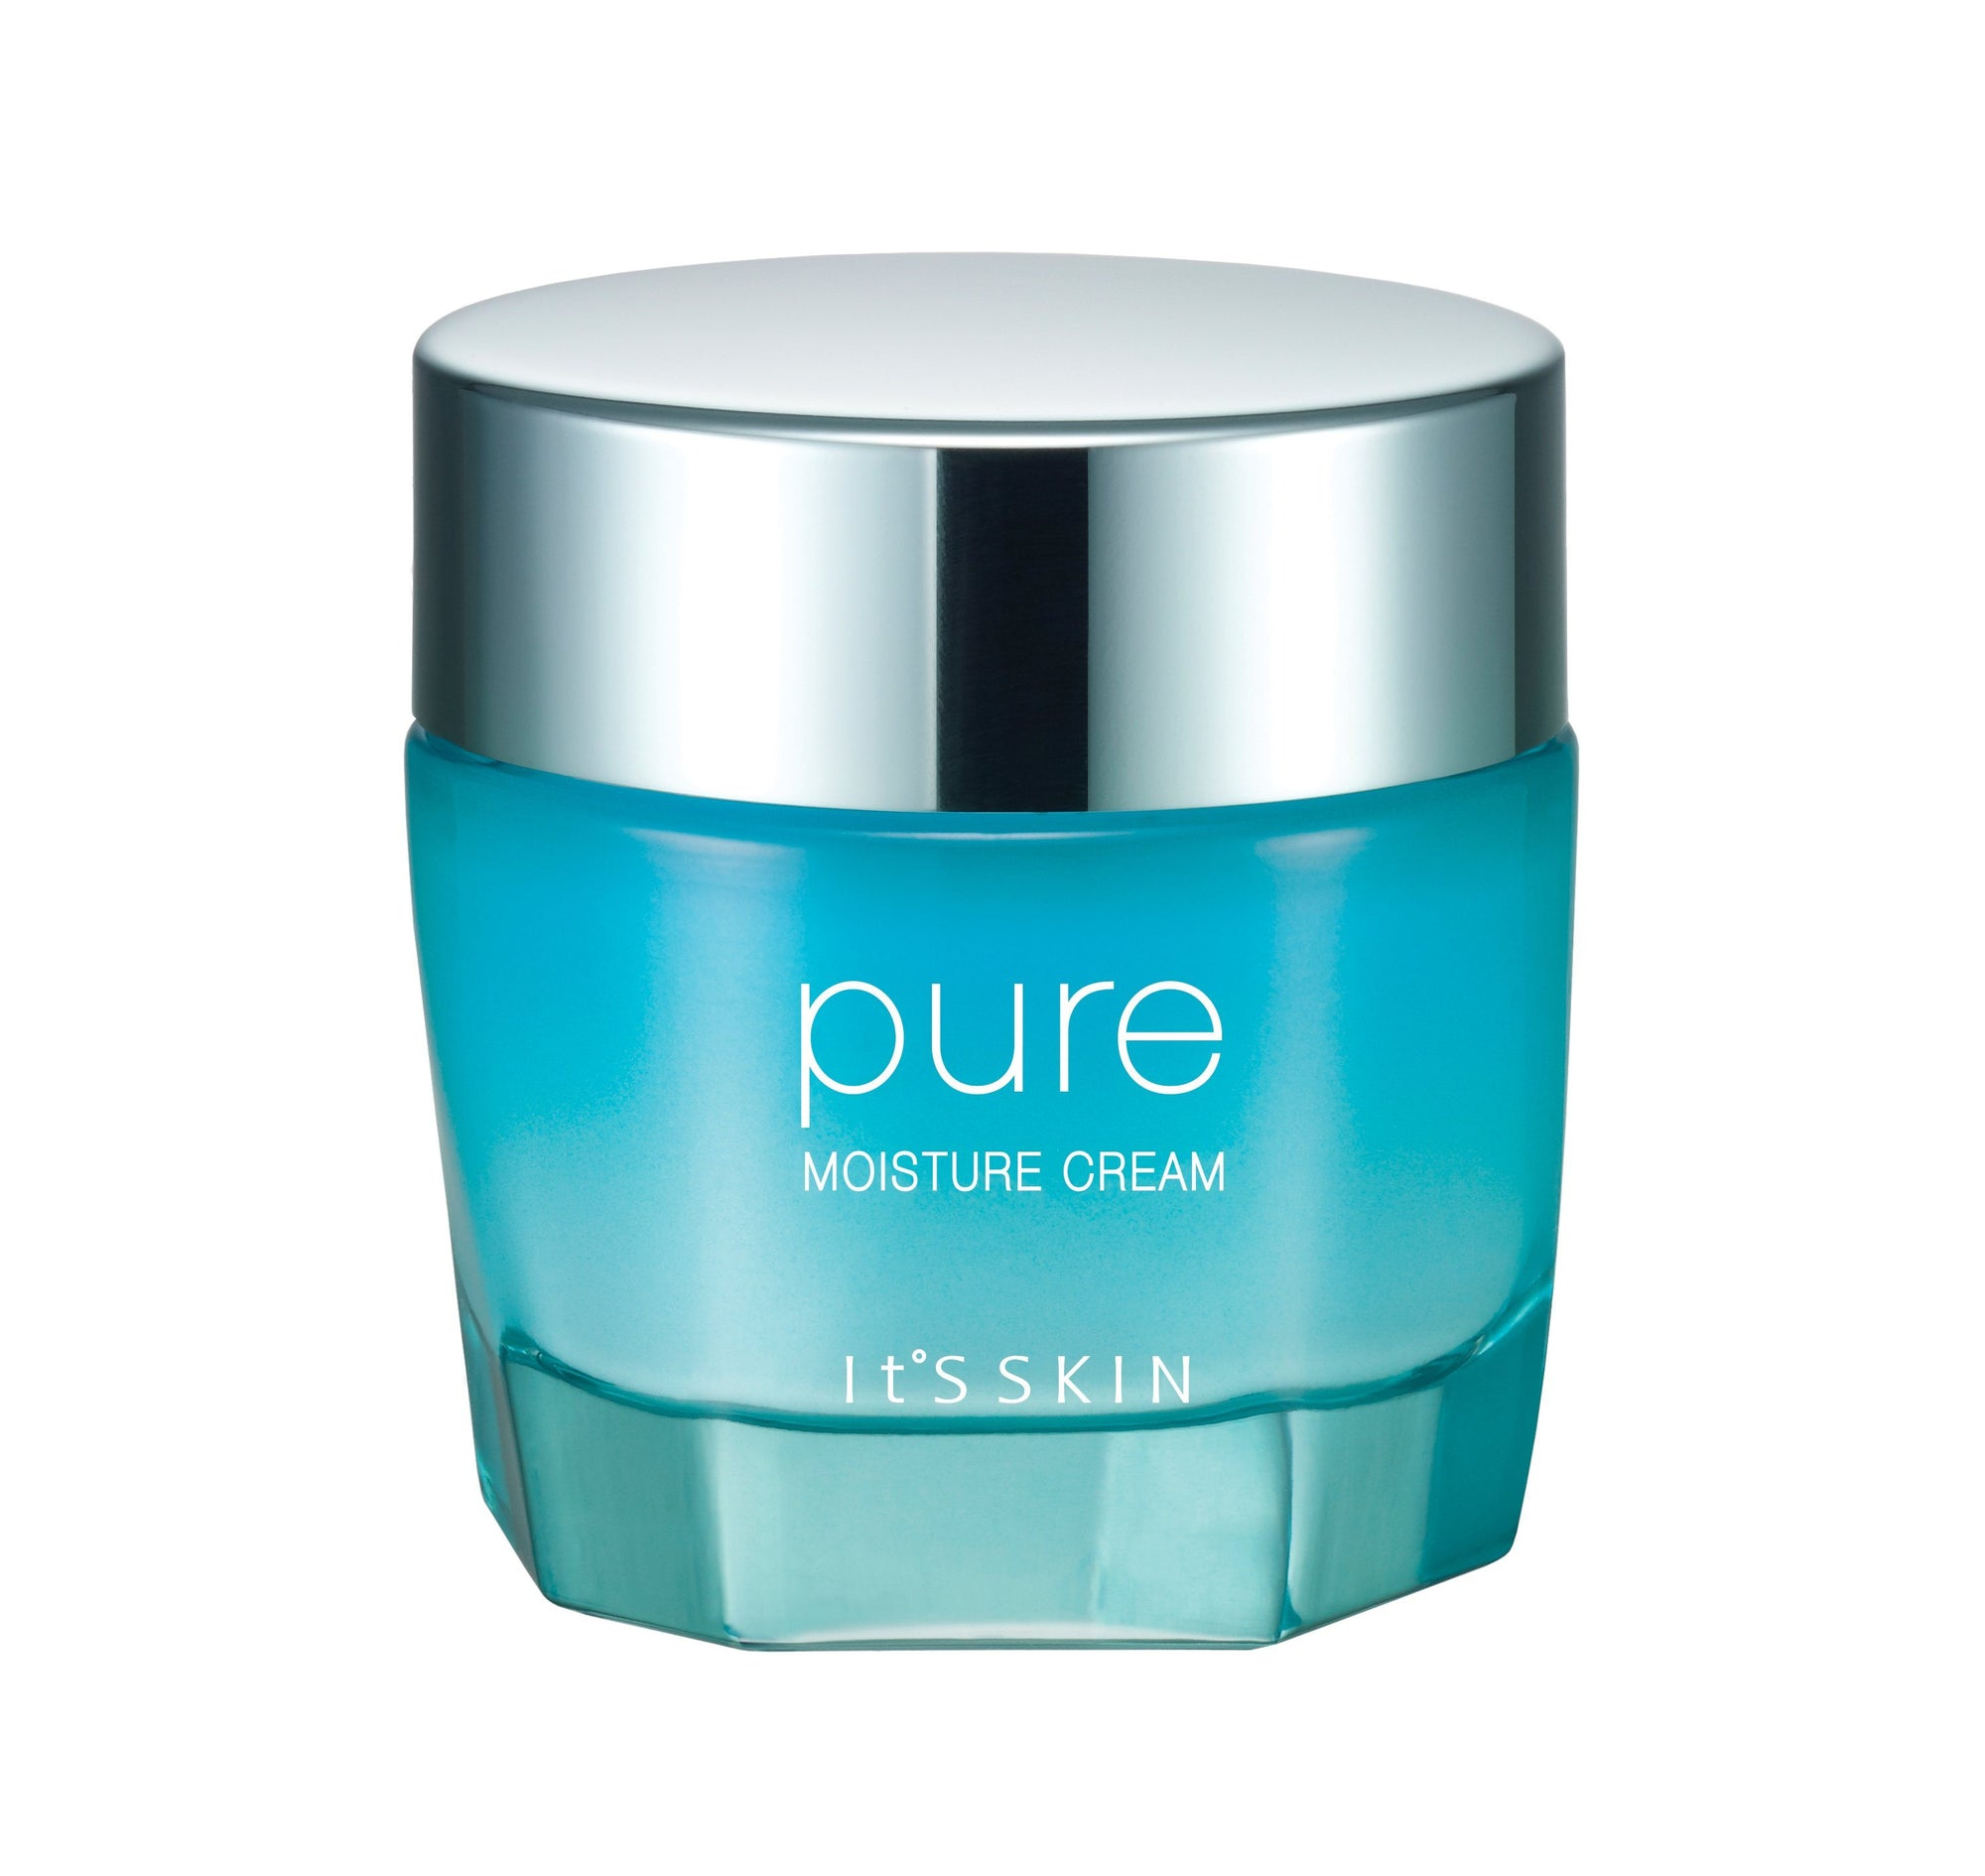 Health & Beauty > Personal Care > Cosmetics > Skin Care > Lotion & Moisturizer - Pure Moisture Cream Krem Do Twarzy 100 Ml